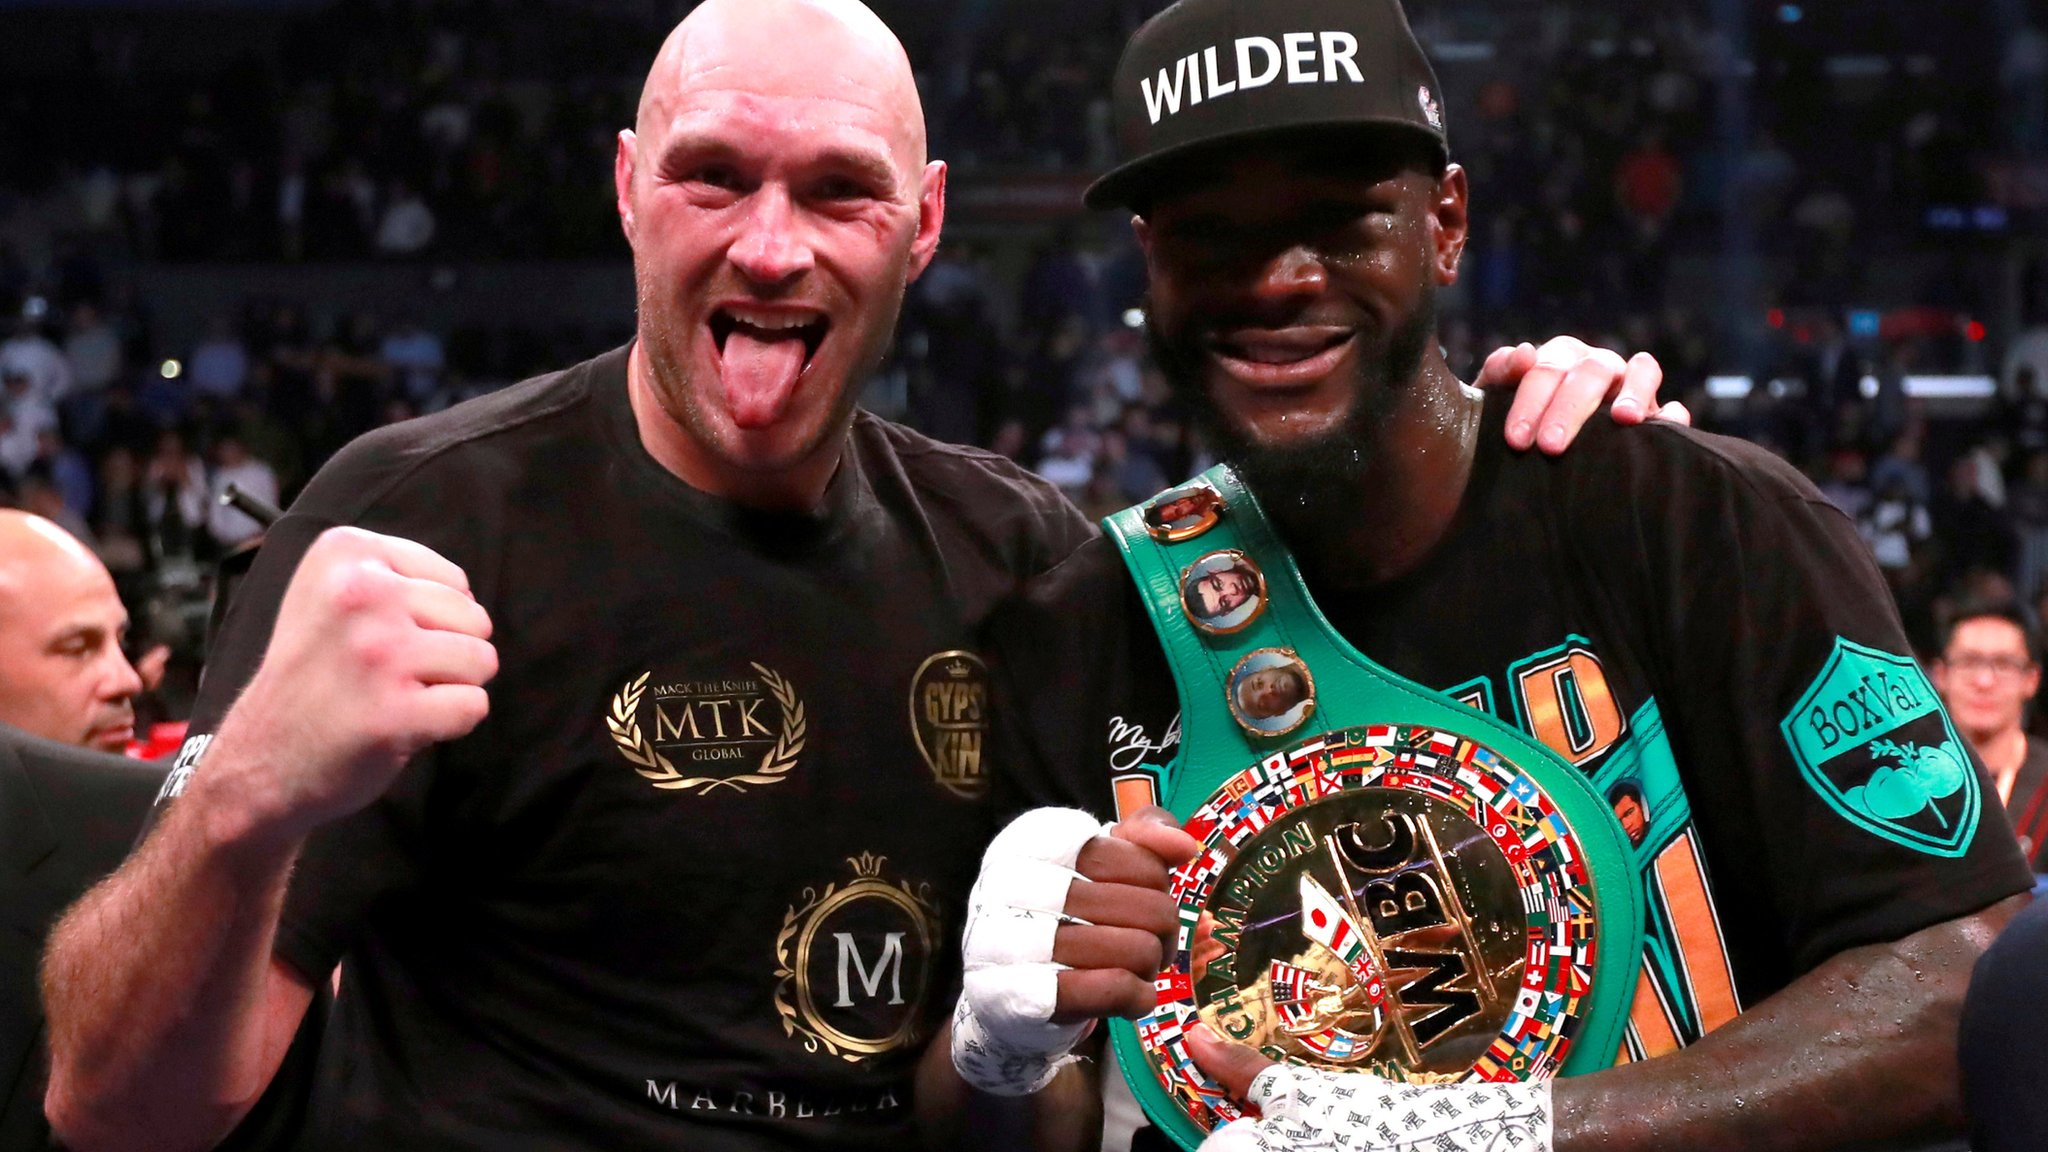 Wilder v Fury II: WBC says Briton is entitled to greater share of rematch purse